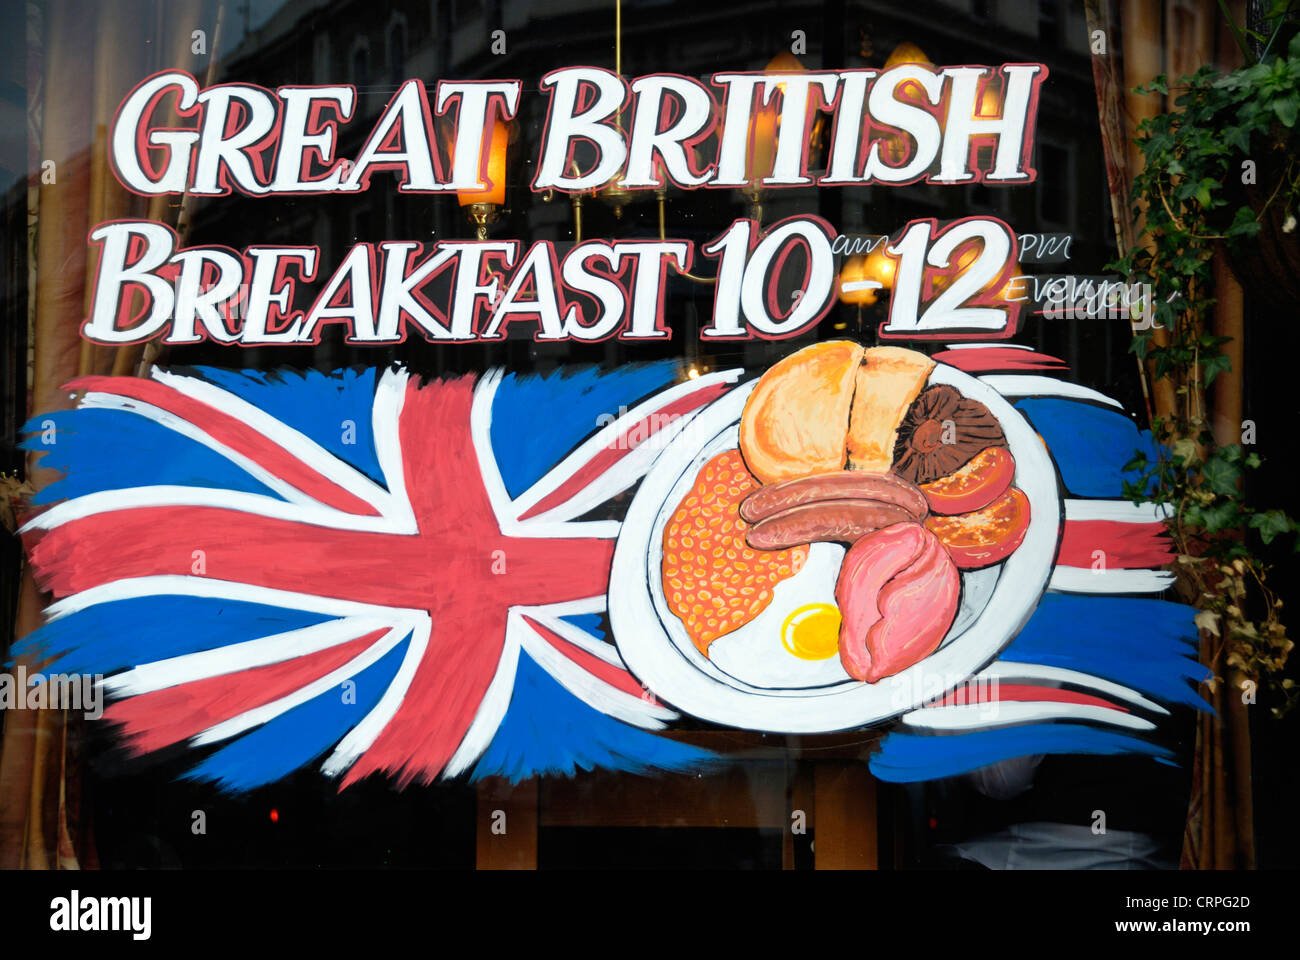 Sign in the window of a London pub advertising its offer of a Great British Breakfast between 10 and 12. Stock Photo